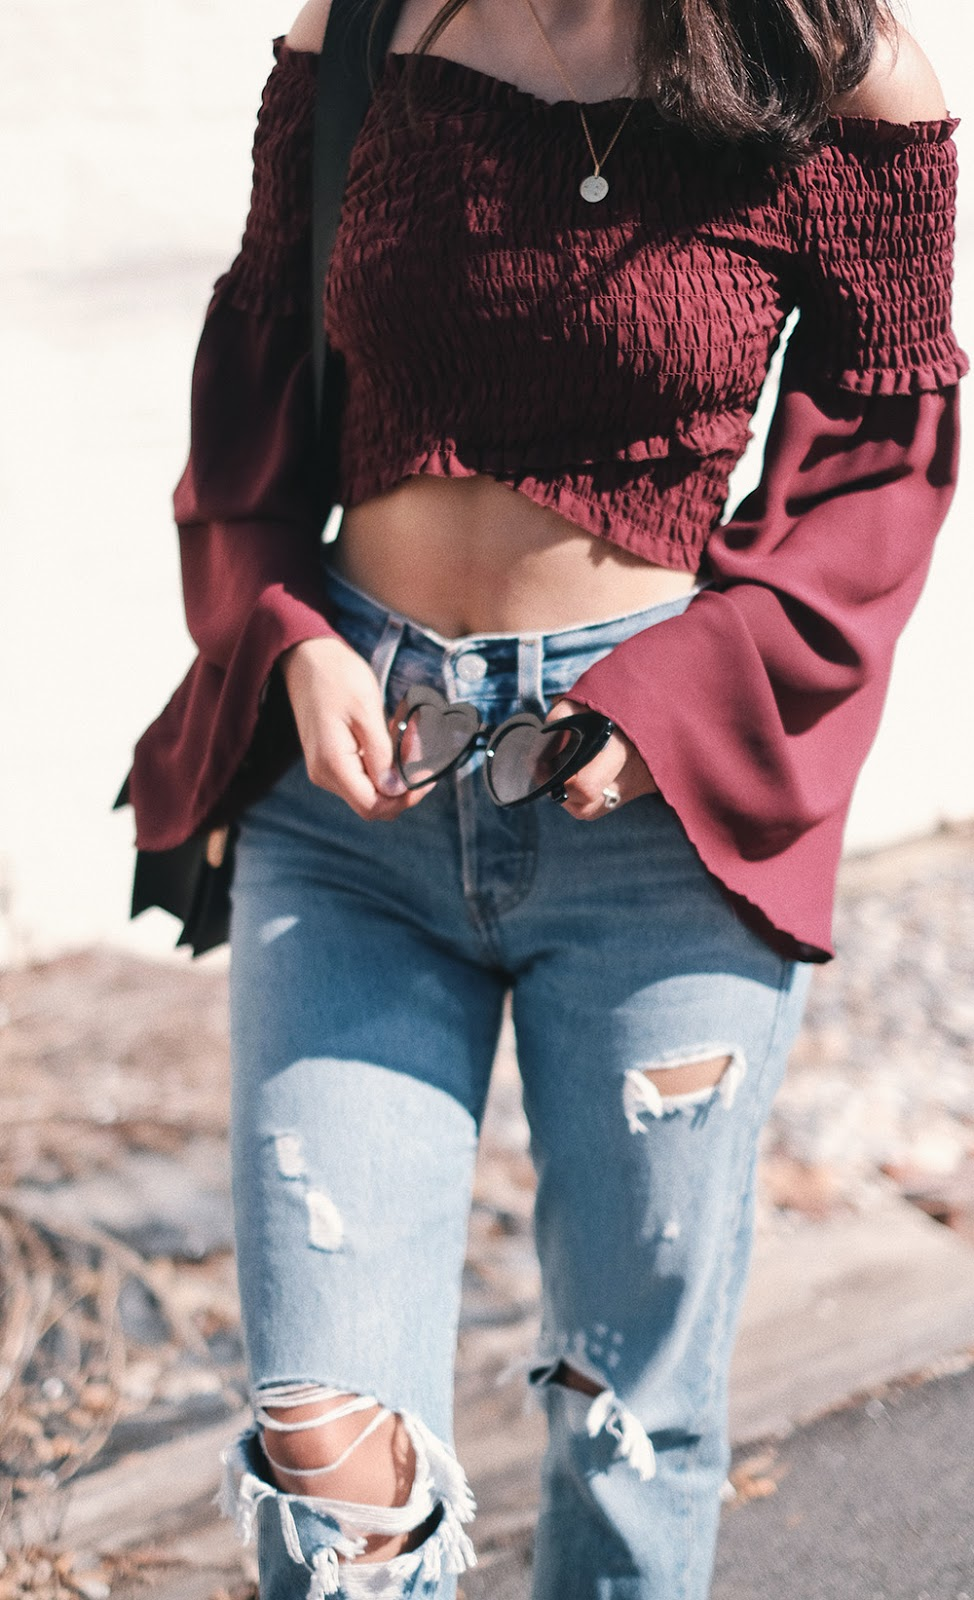 cateye heart sunglasses, levis authentically yours, off the shoulder flare sleeve top, fall outfit ideas denim